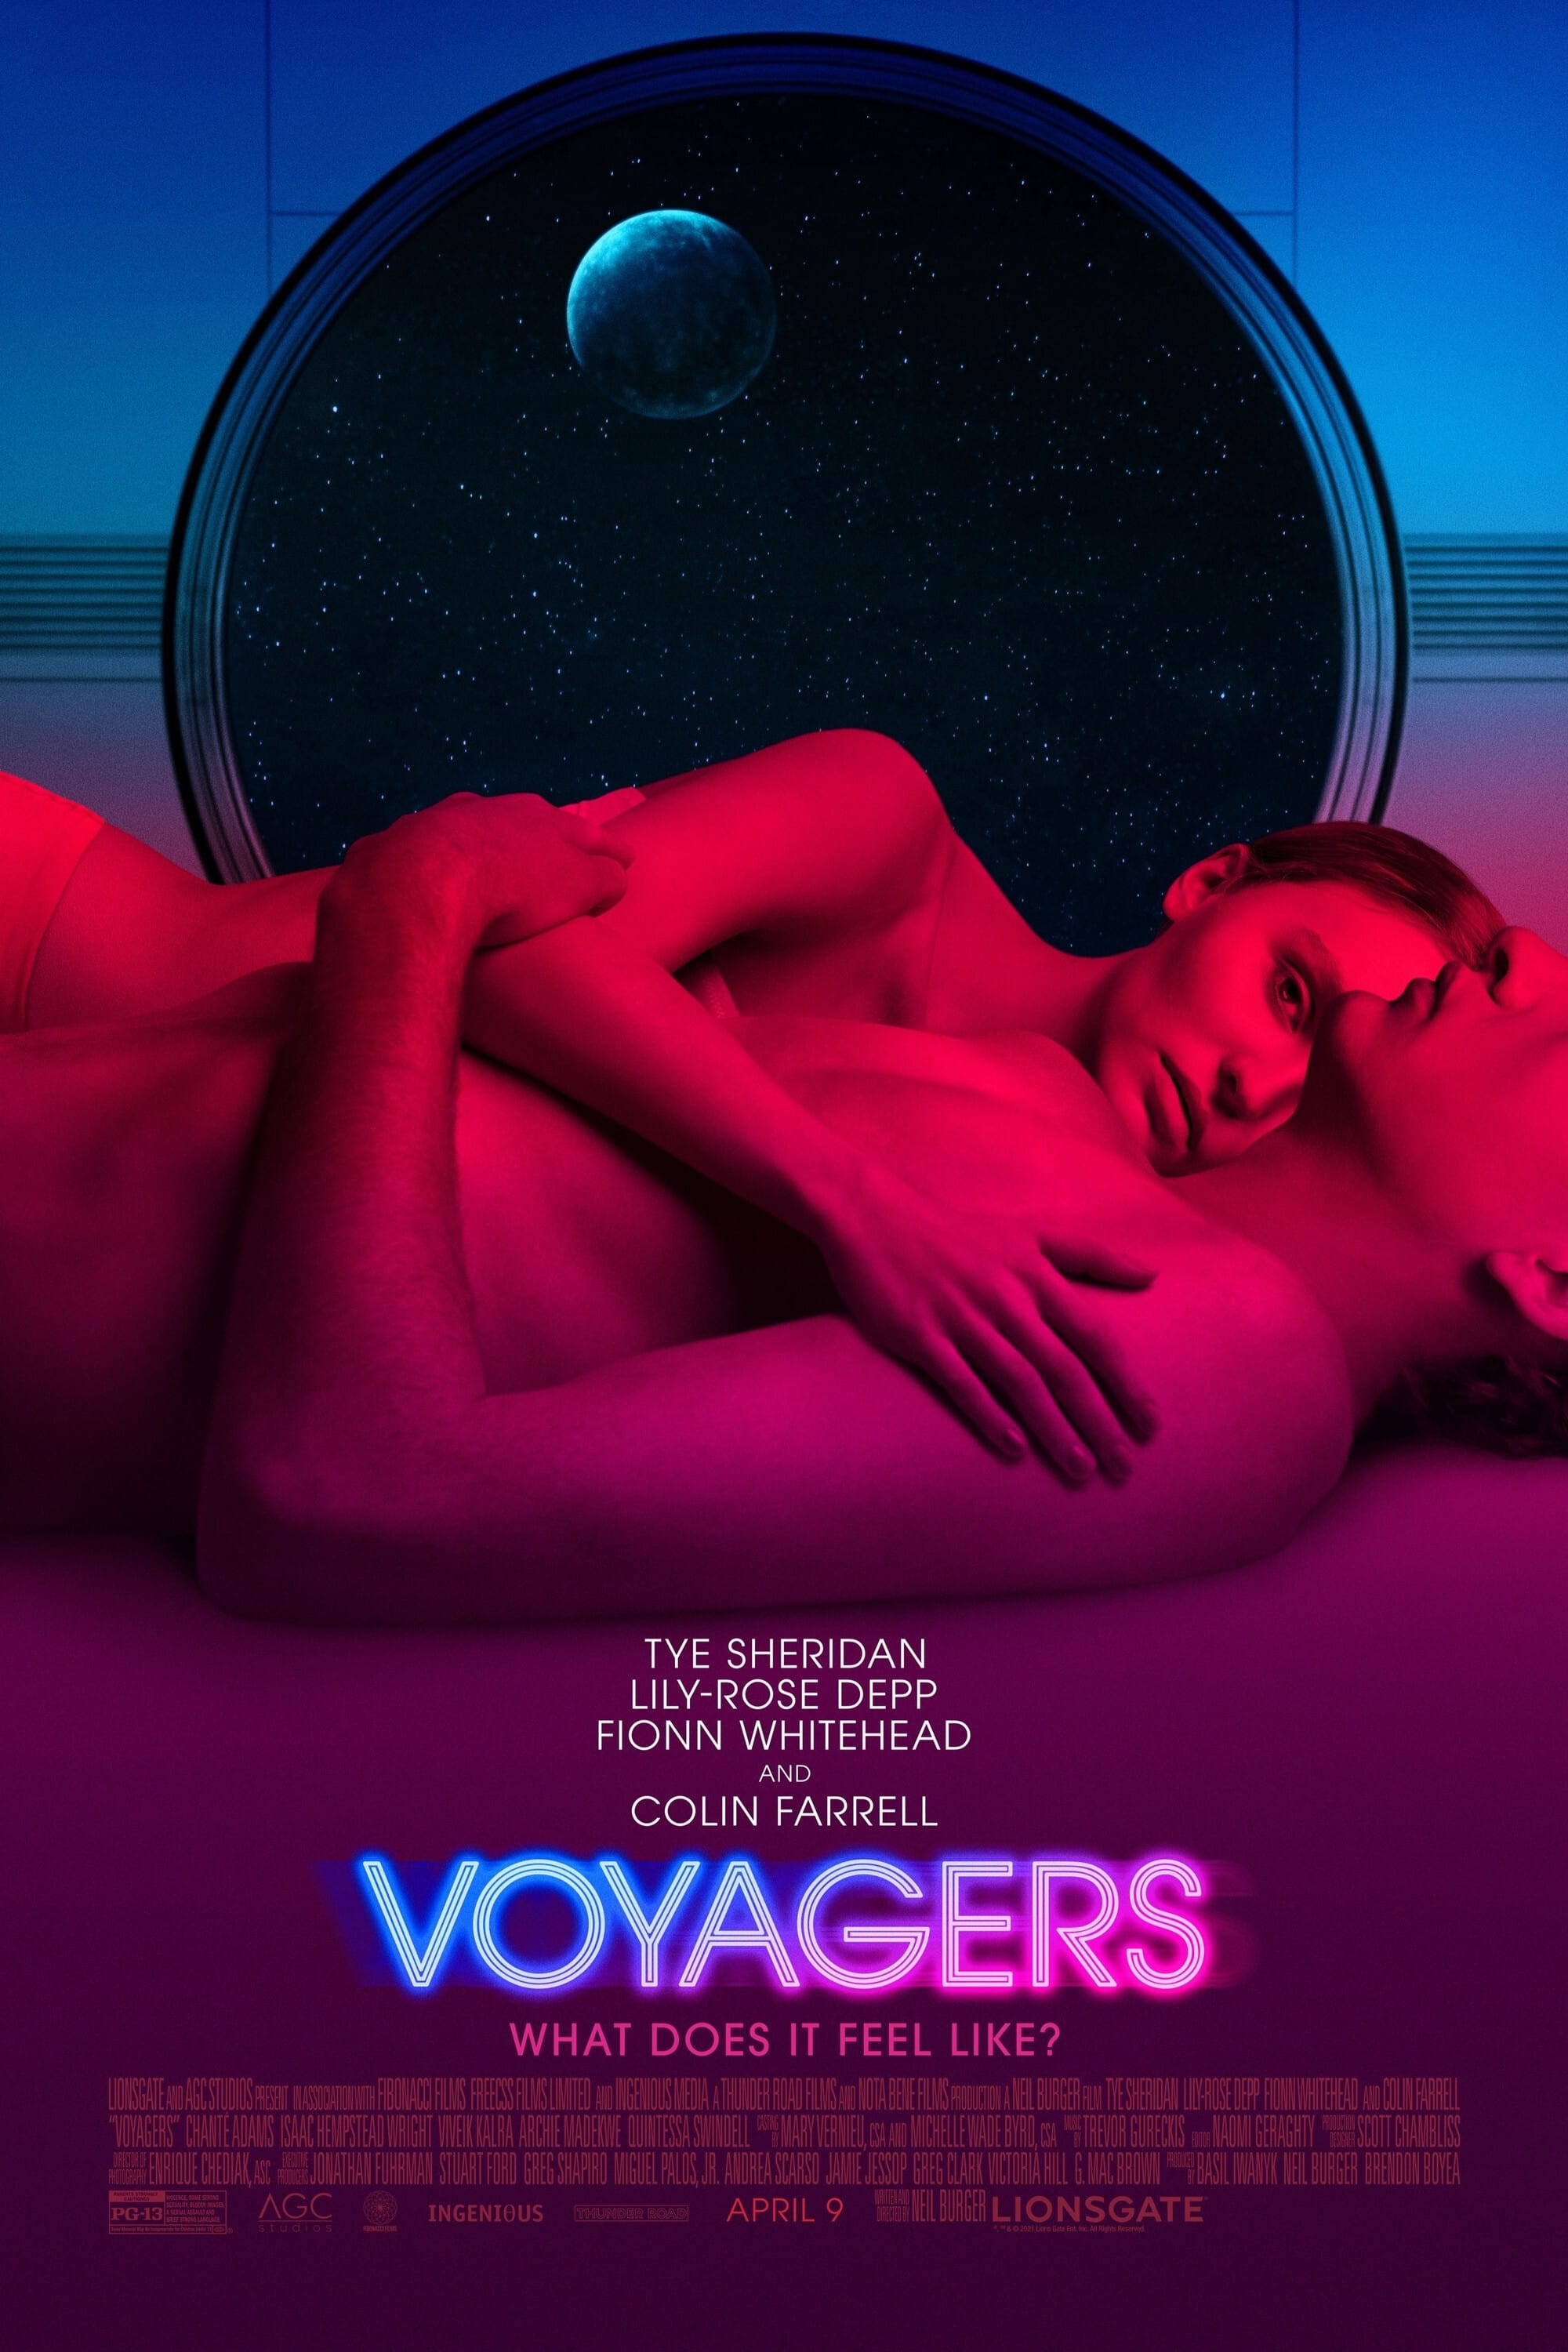 Voyagers (2D) Poster